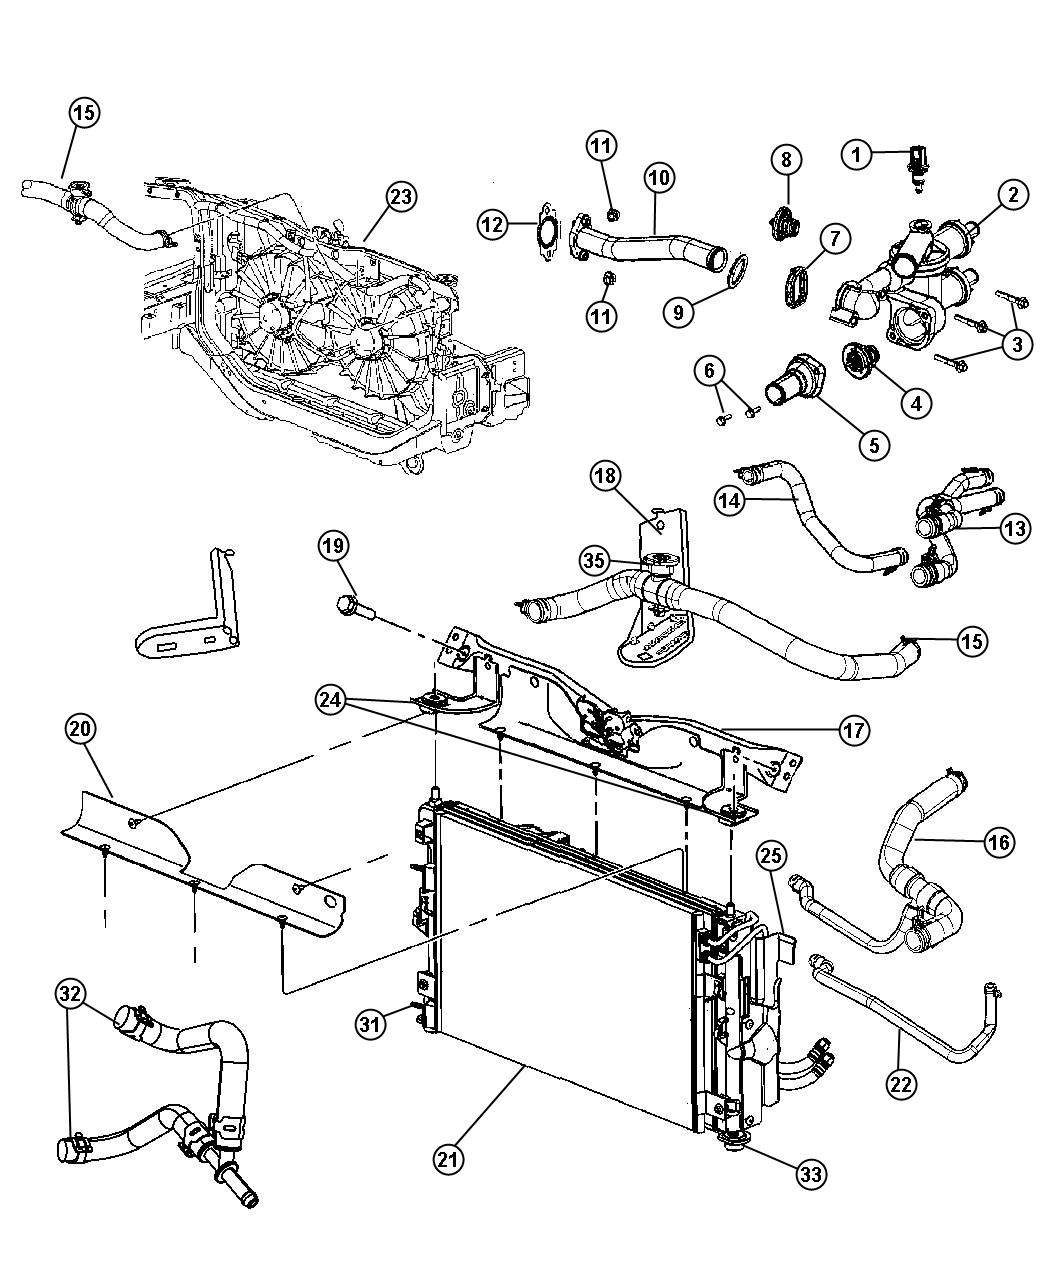 Wiring Diagram For Pt Cruiser Engine